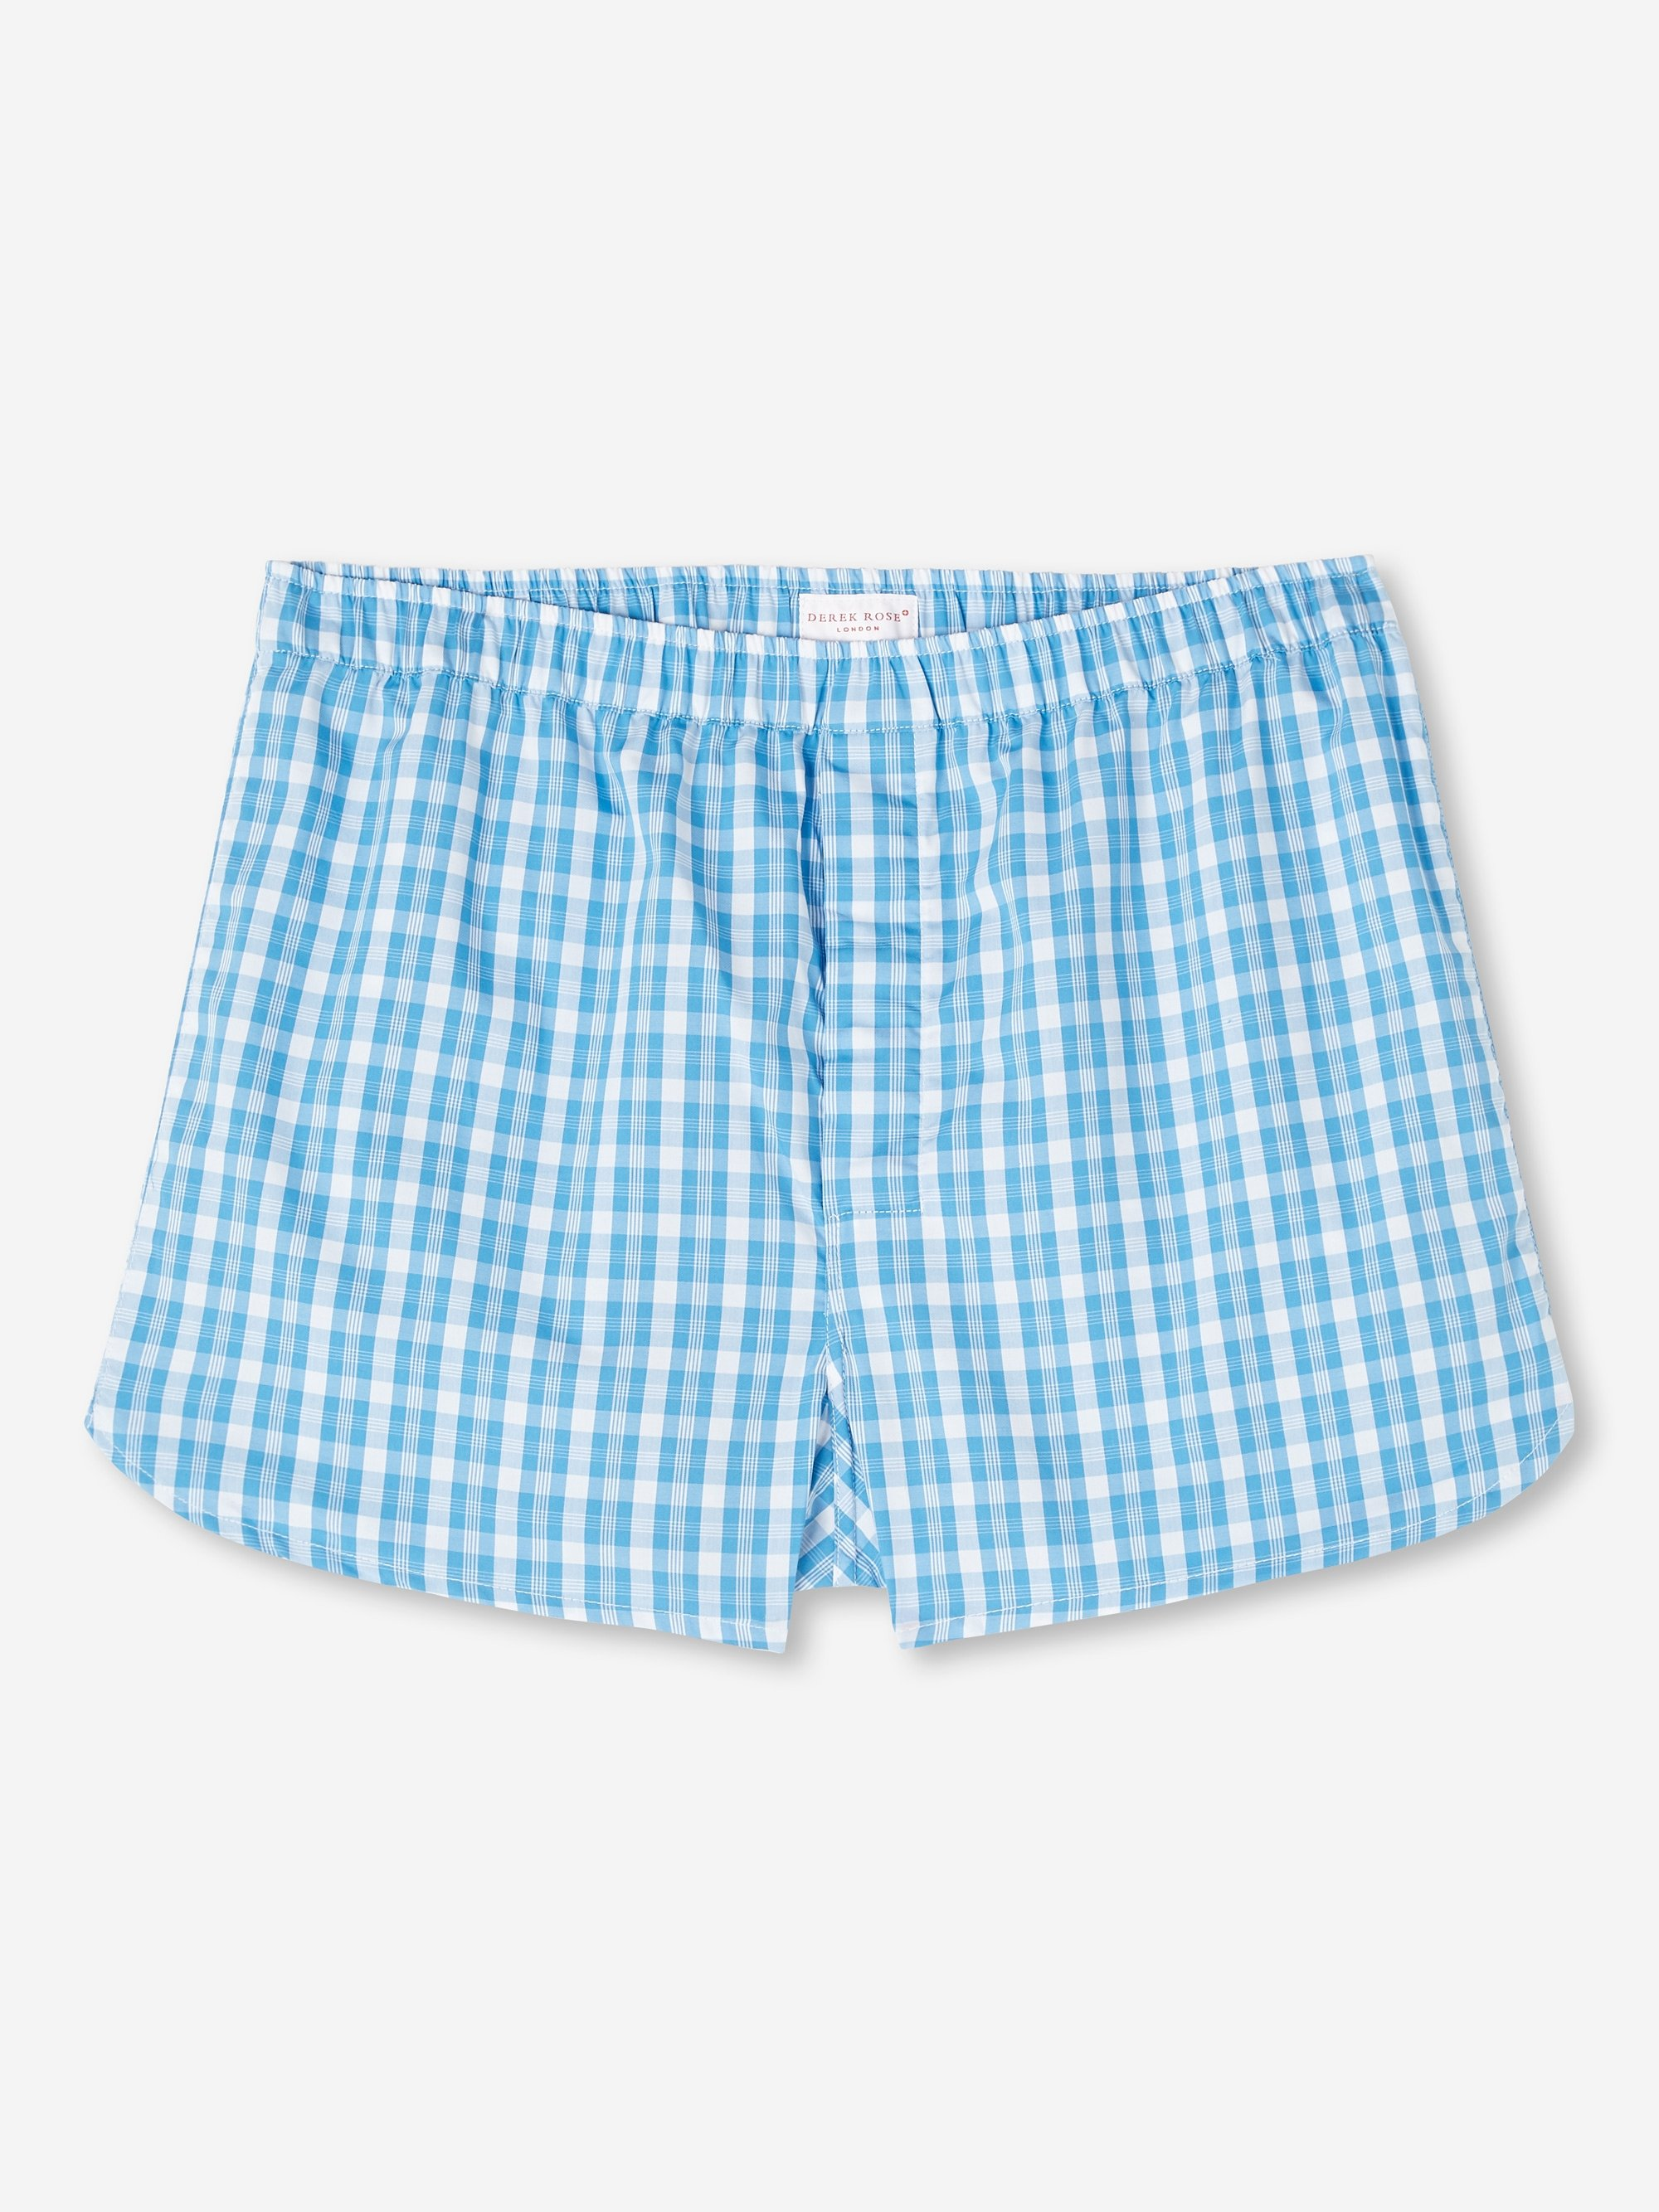 Men's Modern Fit Boxer Shorts Barker 29 Cotton Check Blue